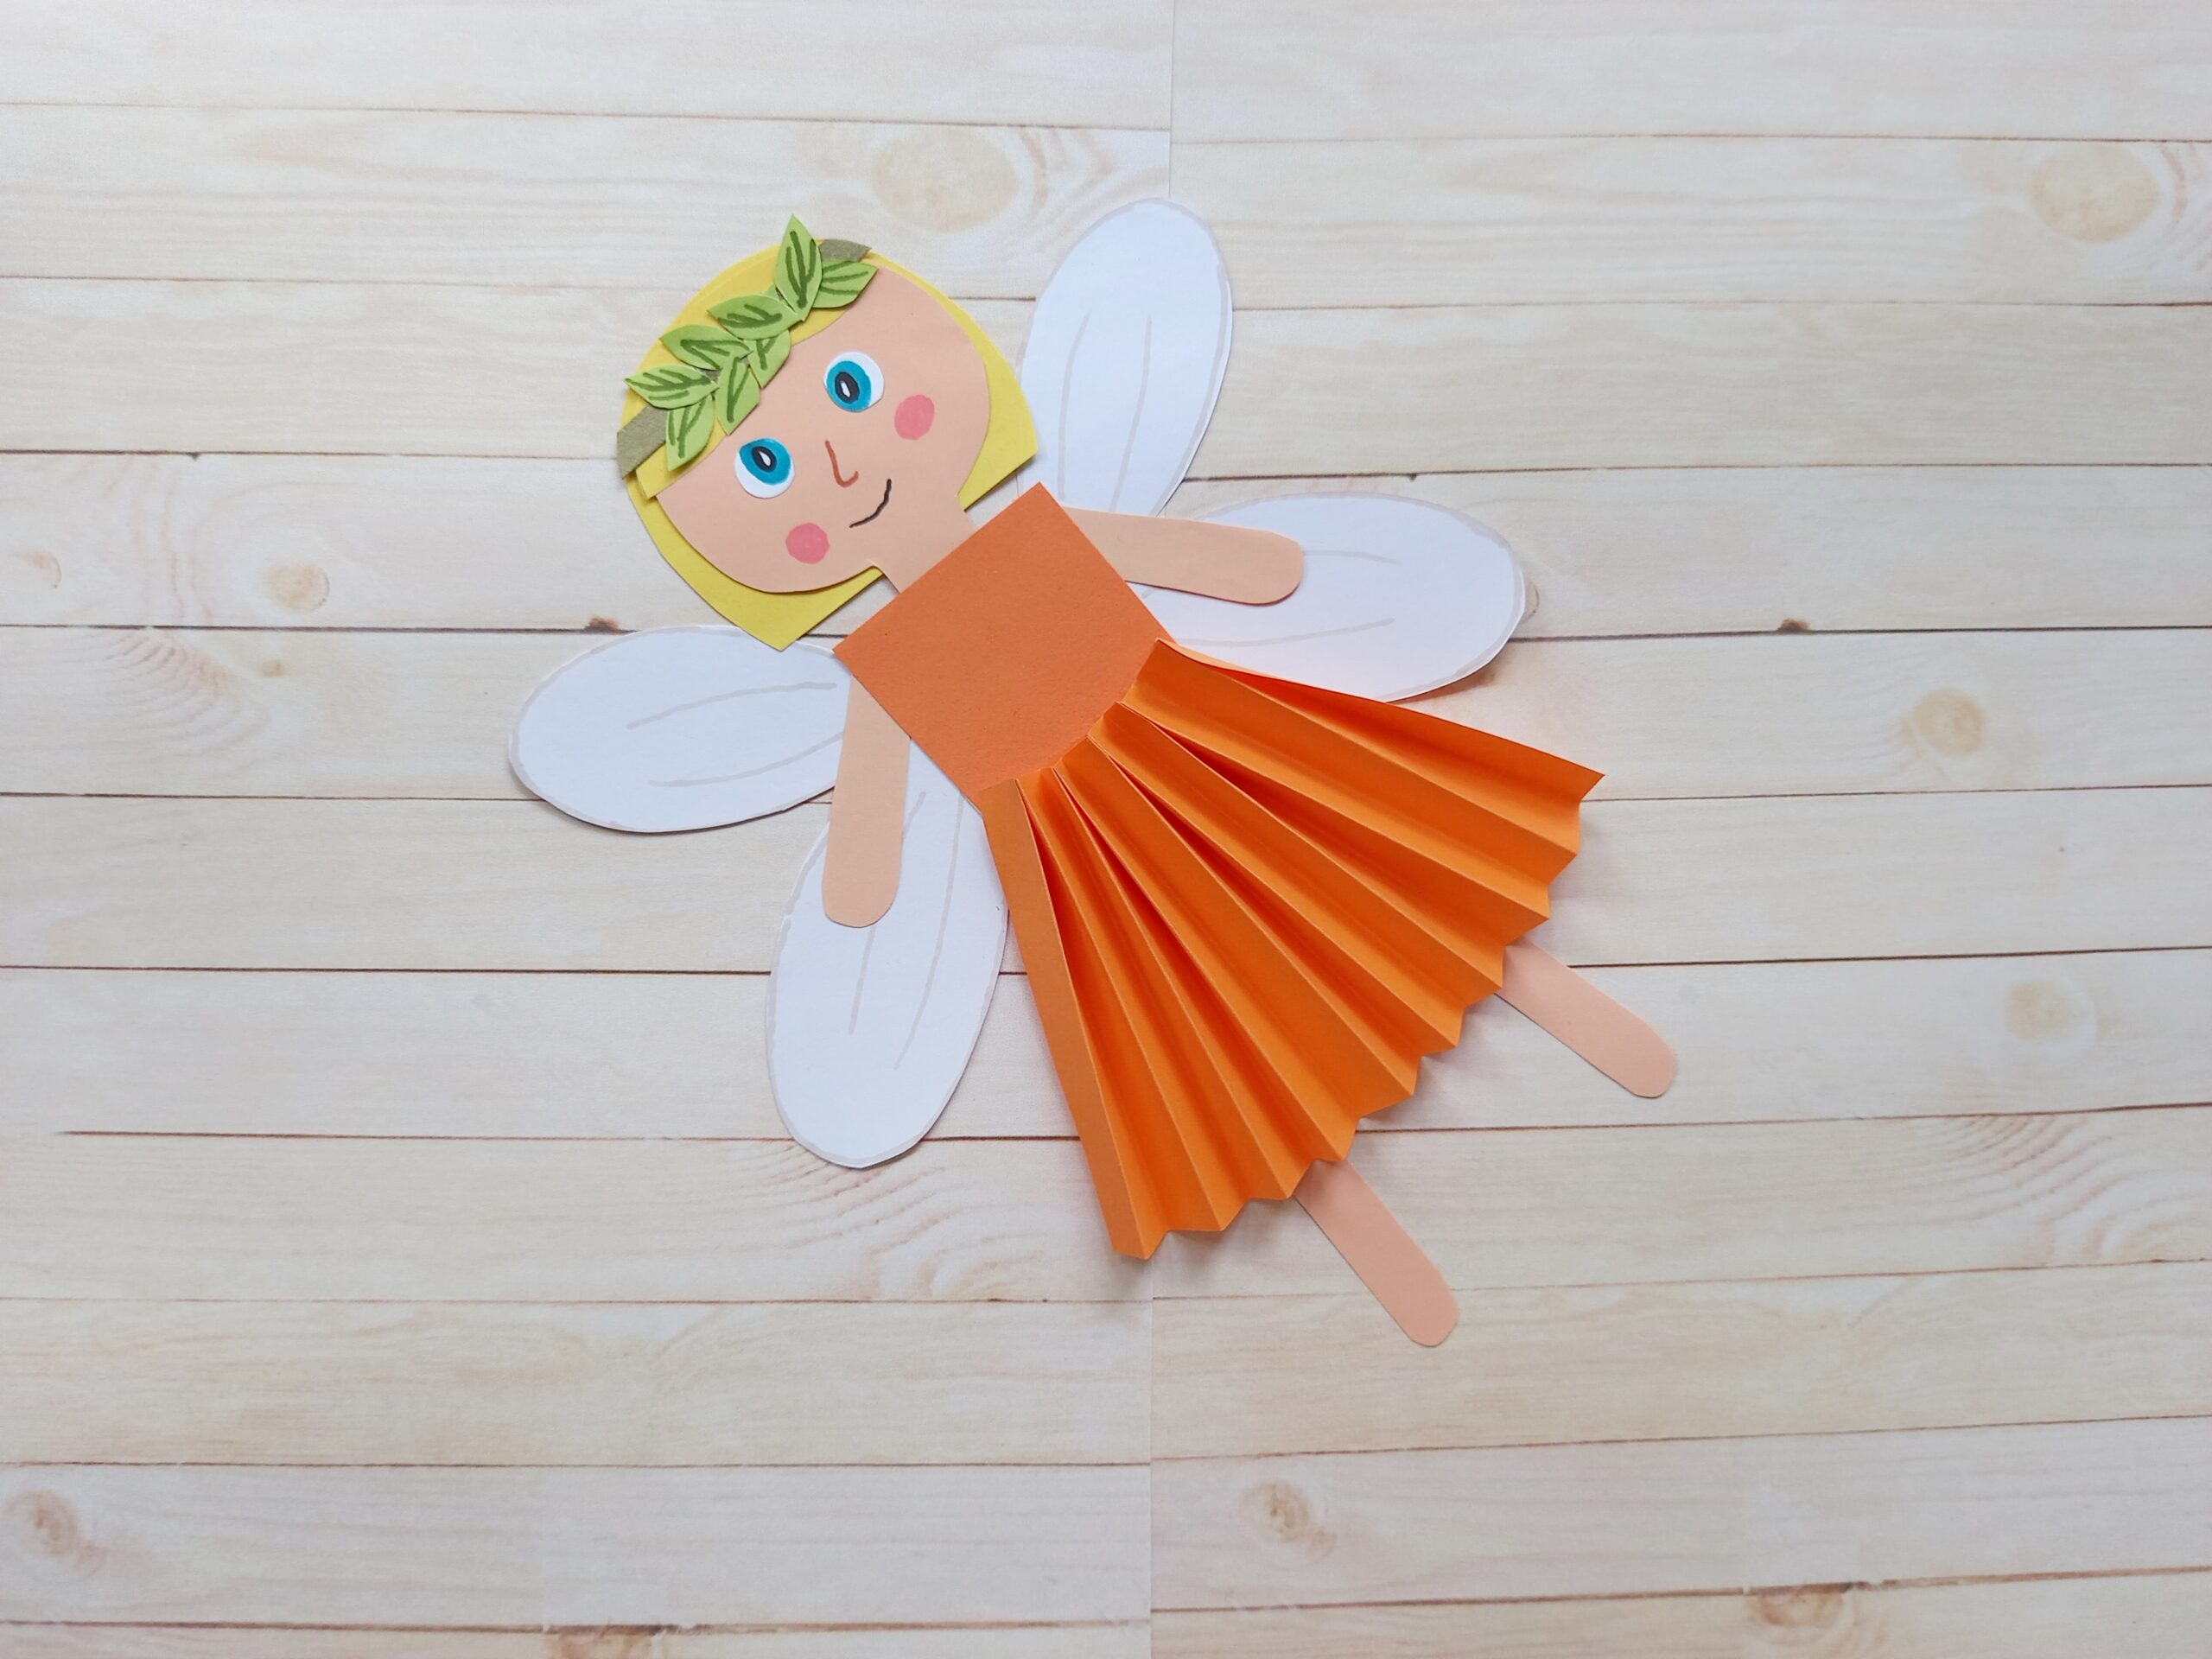 How to Make a Super Cute Fall Fairy Paper Craft with Free Printable Template